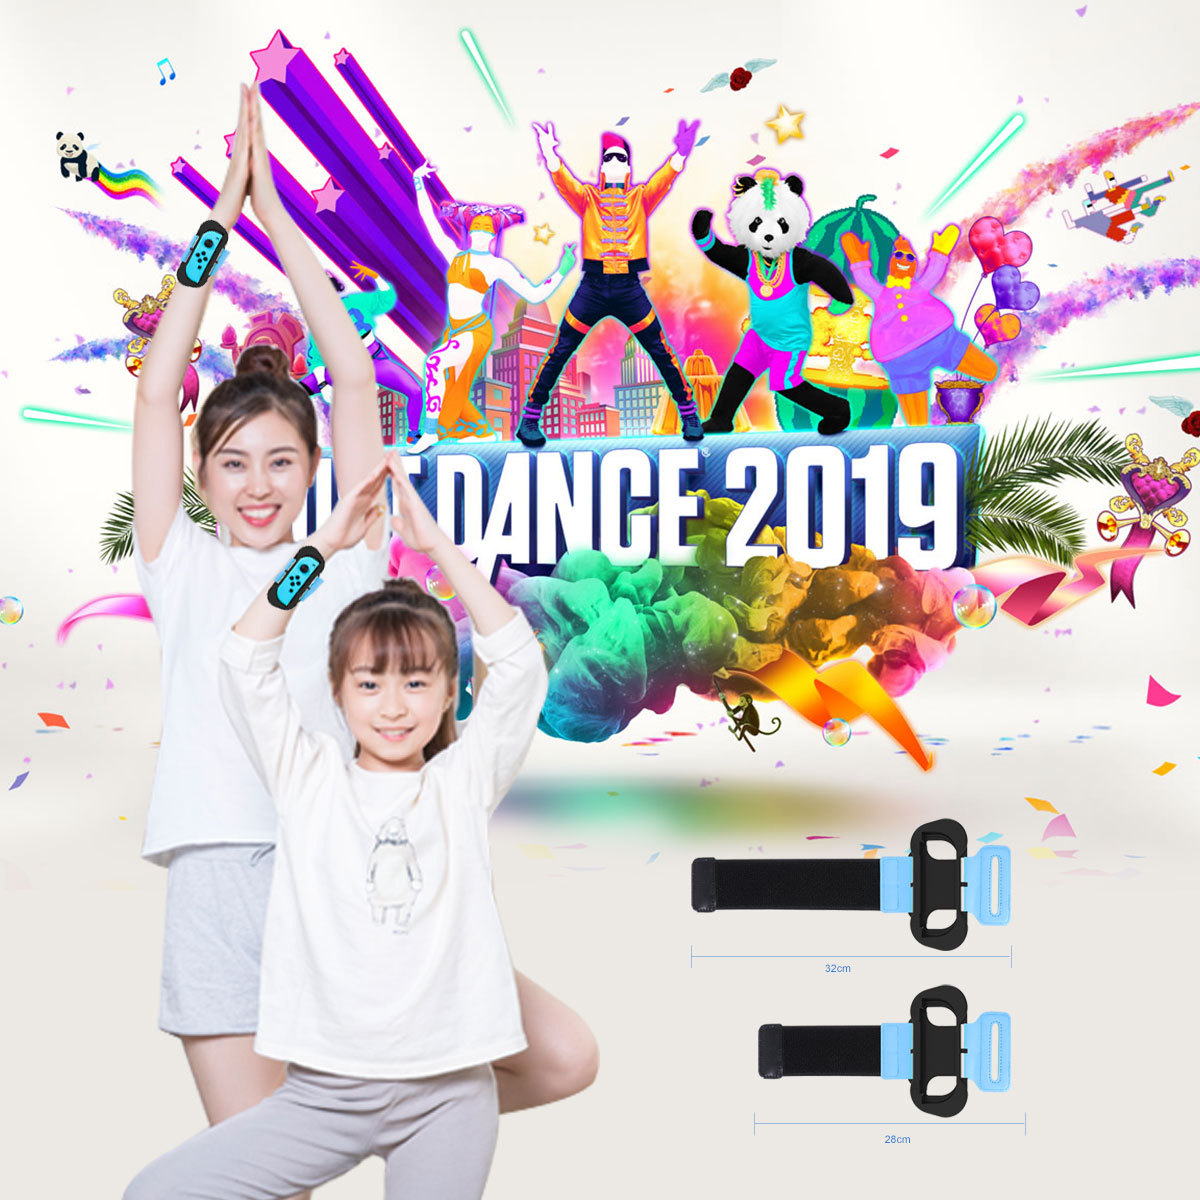 2pcs Game wristband For Nintend Switch Adjustable Elastic dance wrist band Just dance Joy-con controller For NS Game Accessories